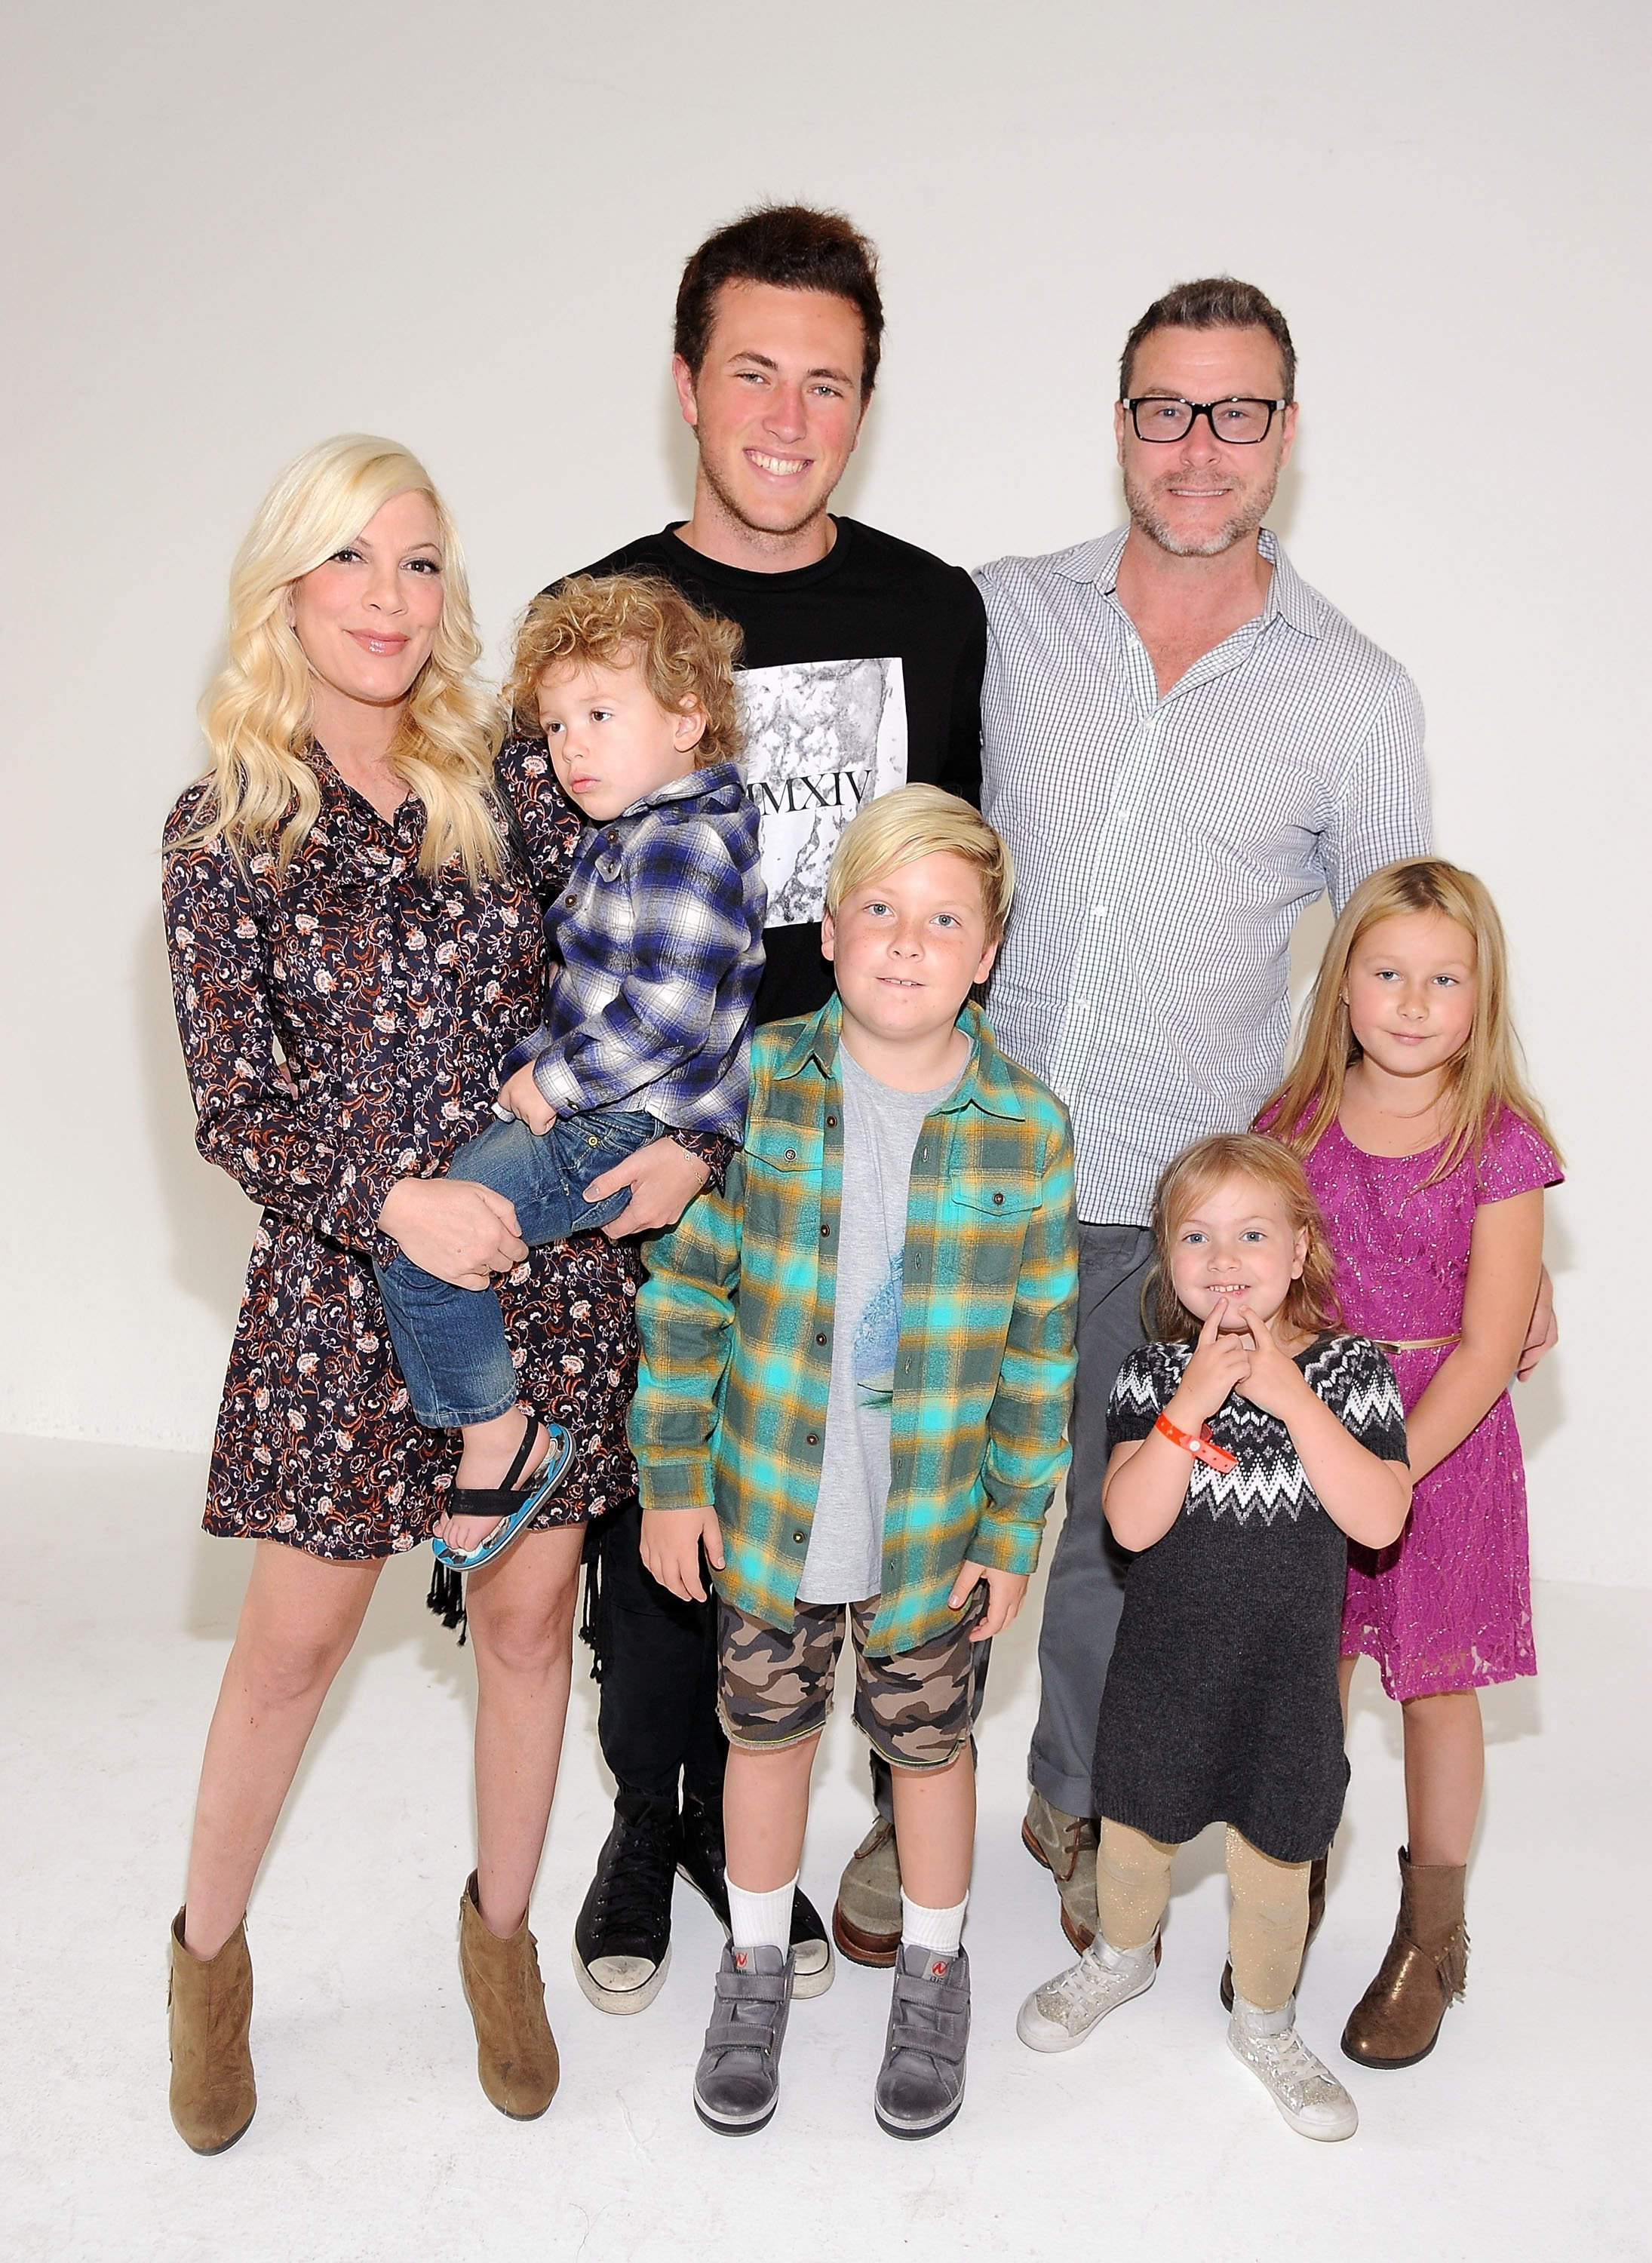 Tori Spelling and Dean McDermott with their children attend the Elizabeth Glaser Pediatric AIDS Foundation's 26th Annual A Time For Heroes Family Festival | Source: Getty Images